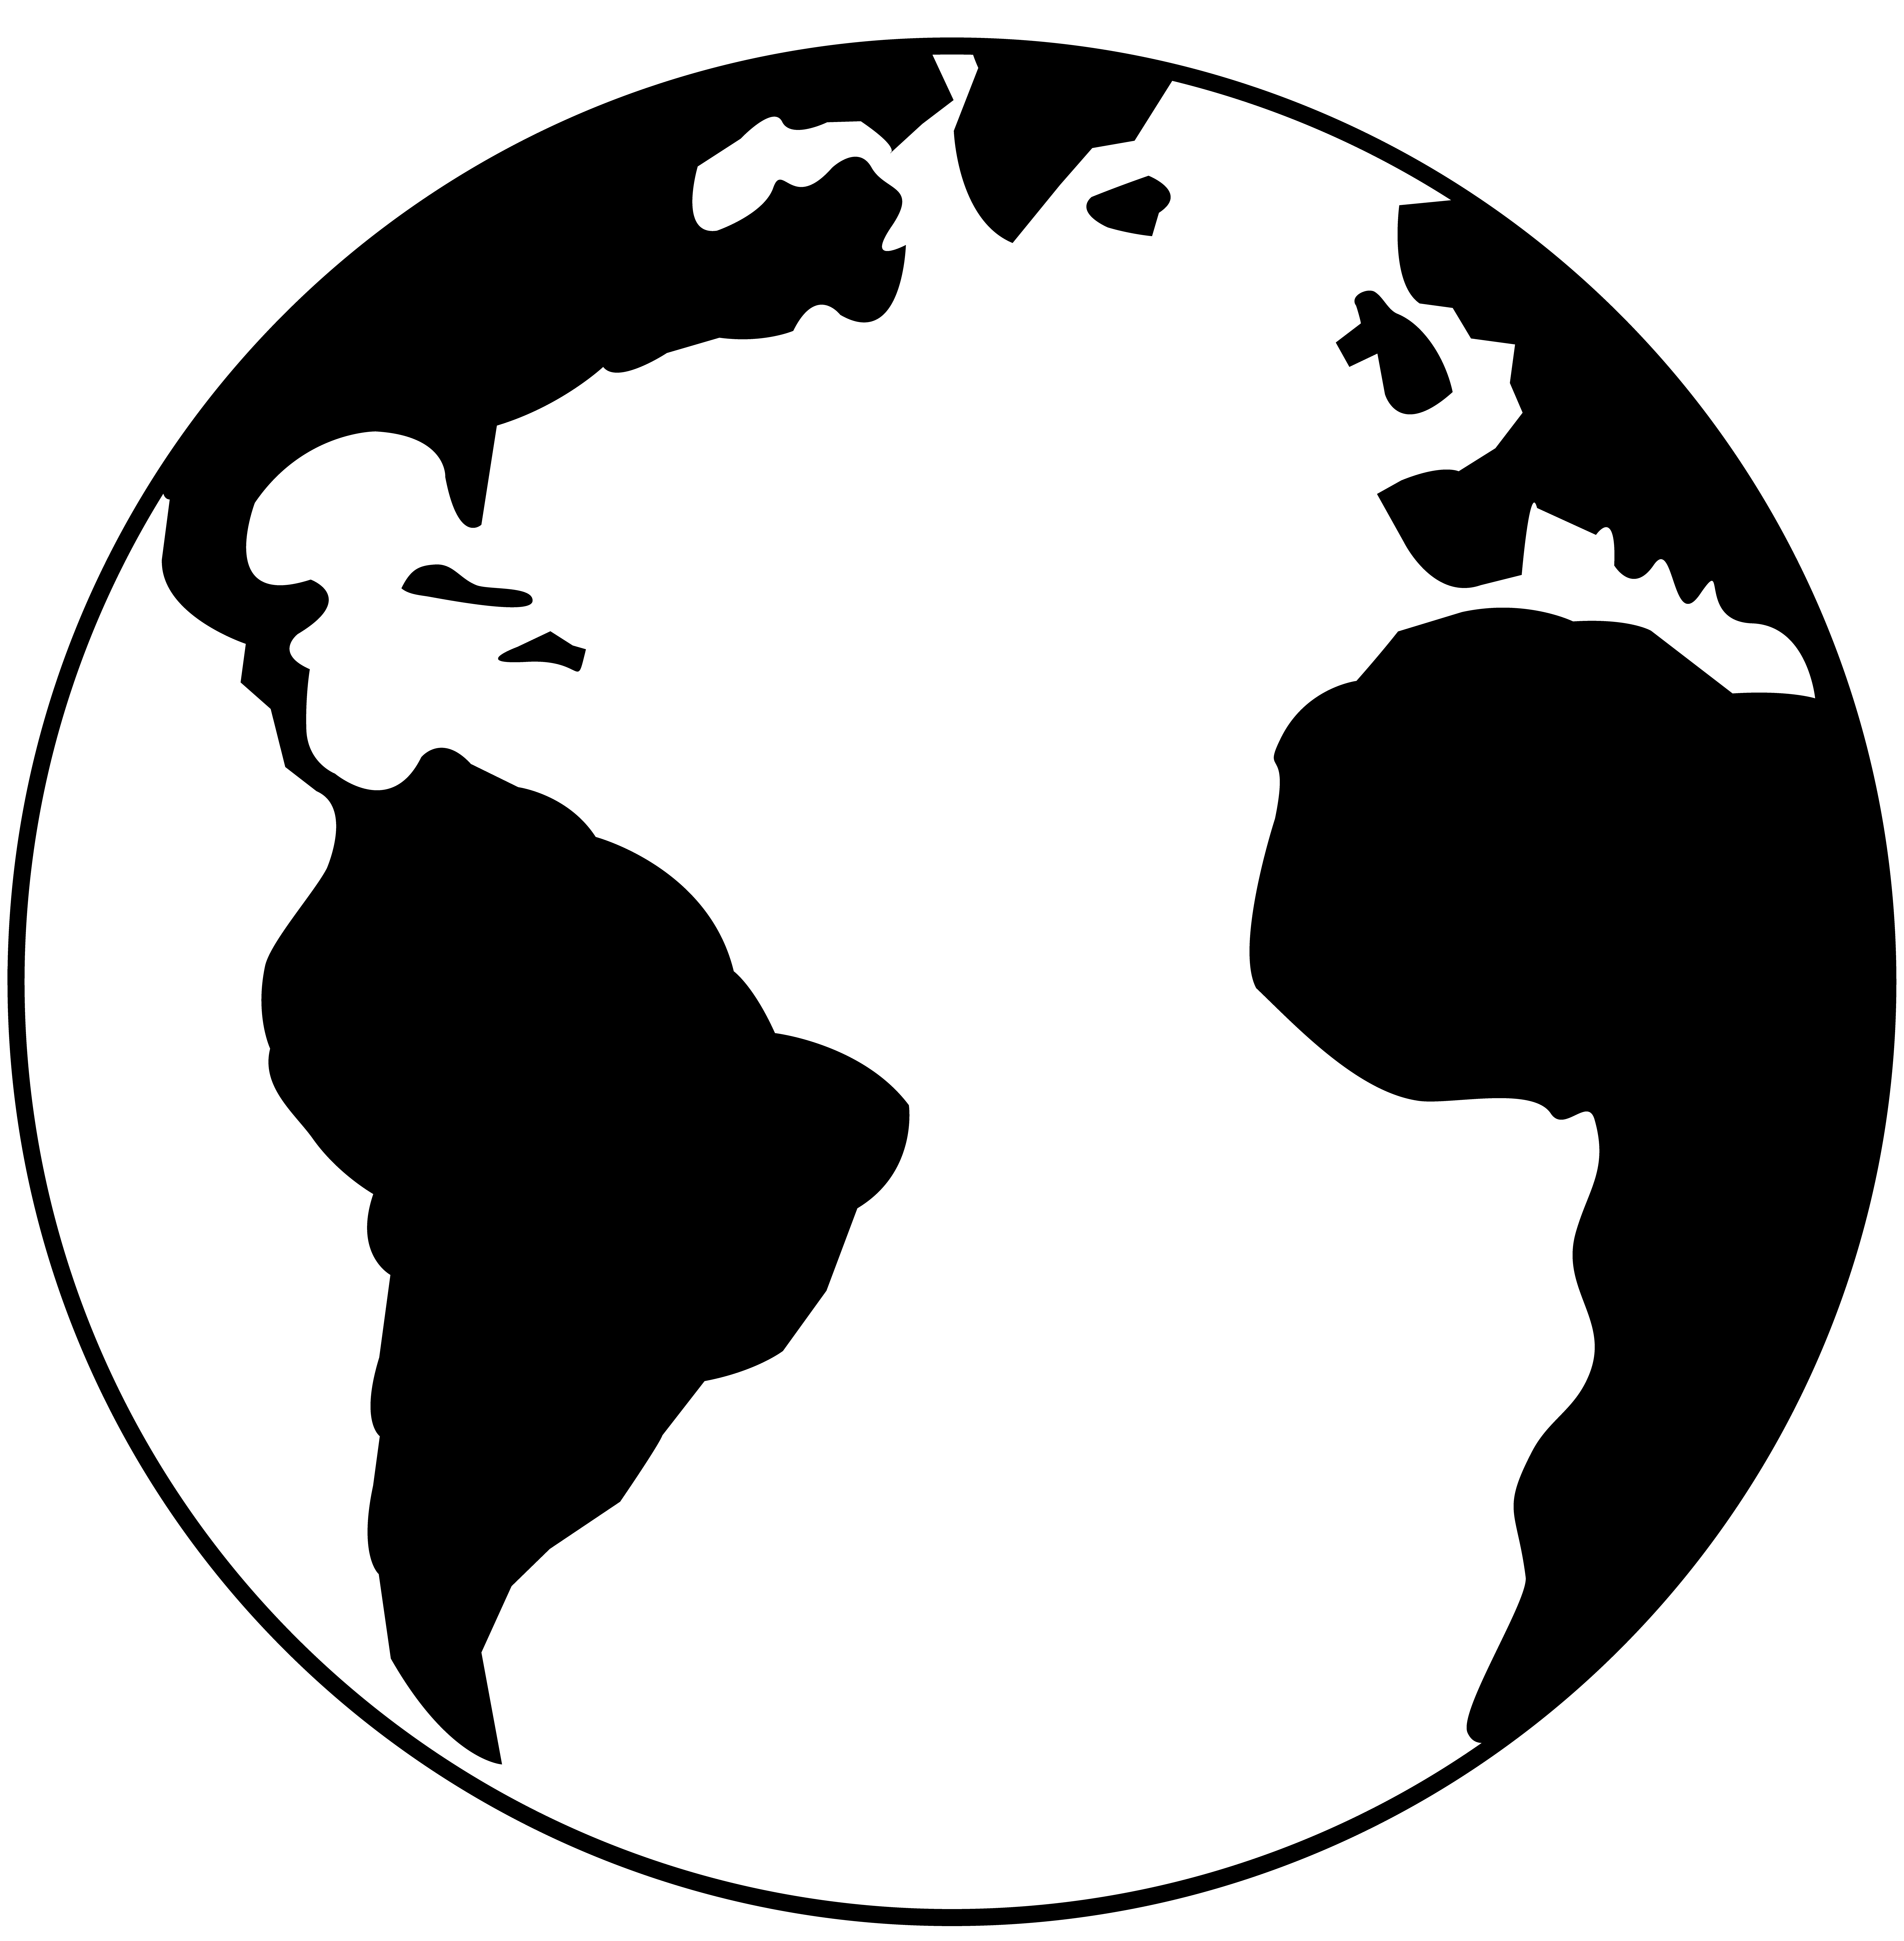 7926x8081 Earth Clipart Black And White